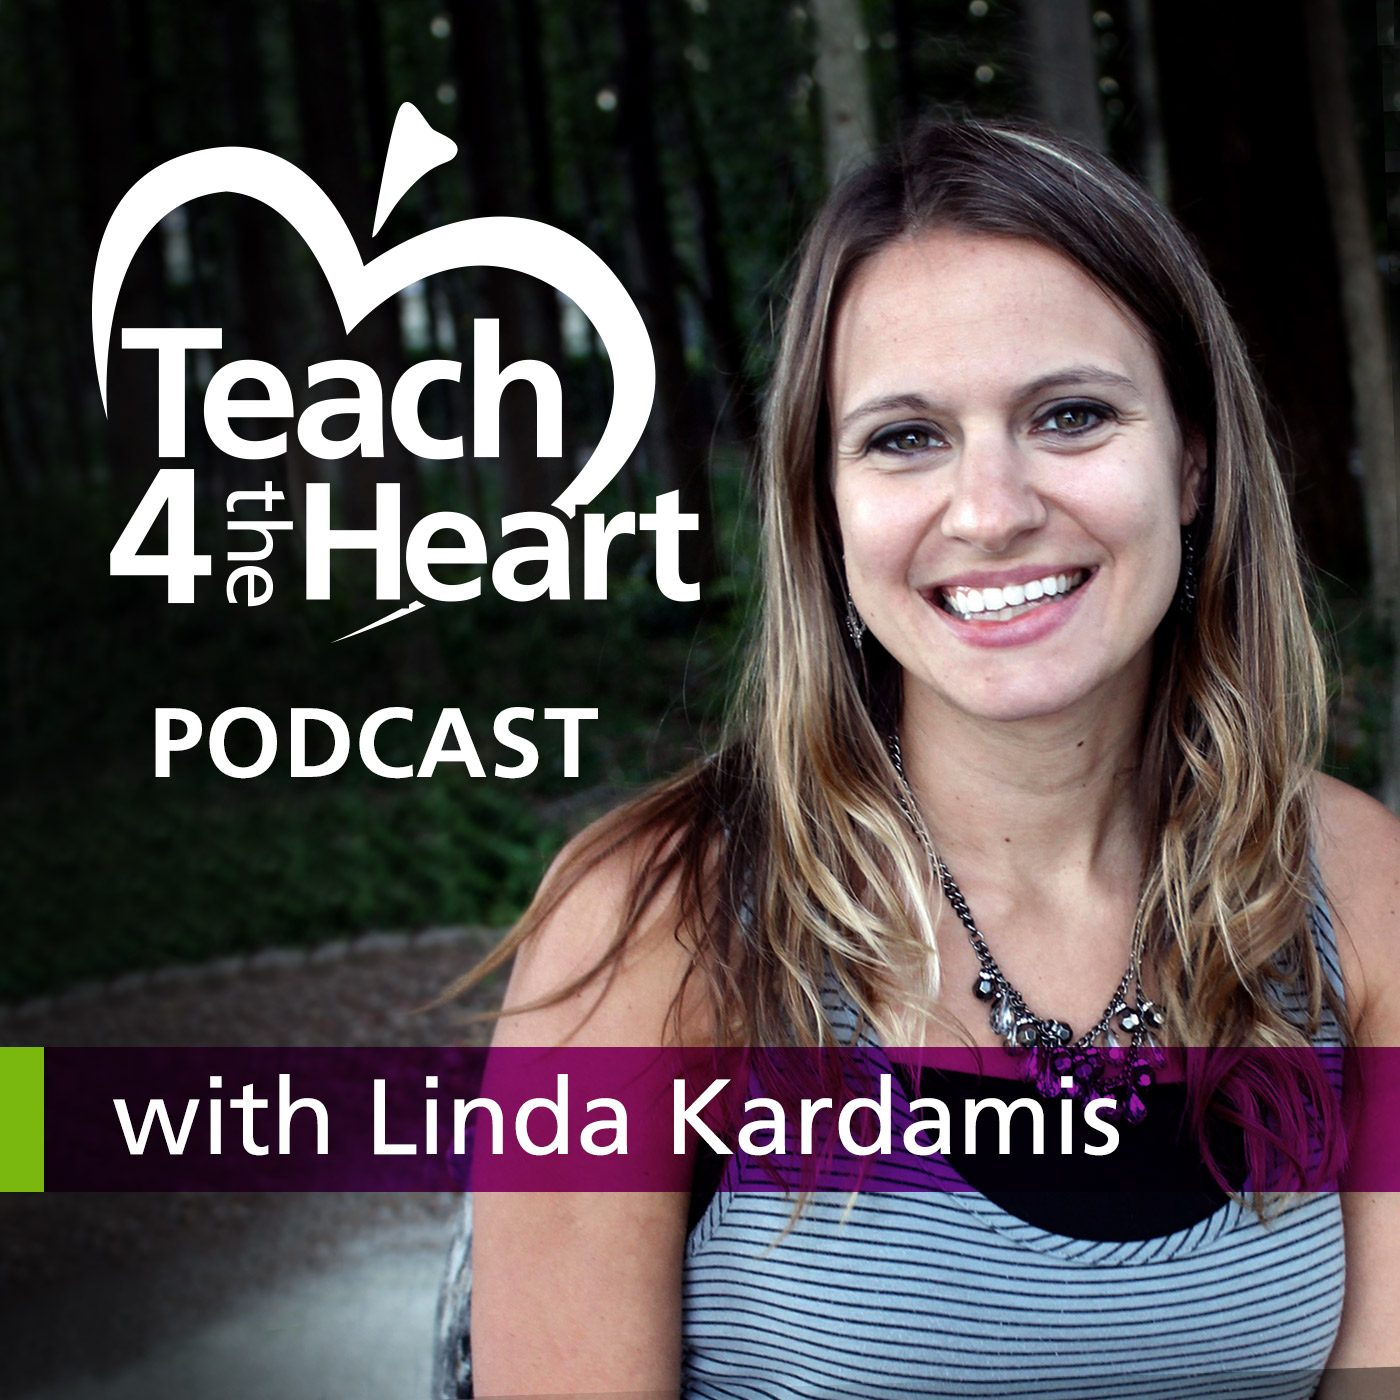 Teach 4 the Heart podcast for Christian teachers